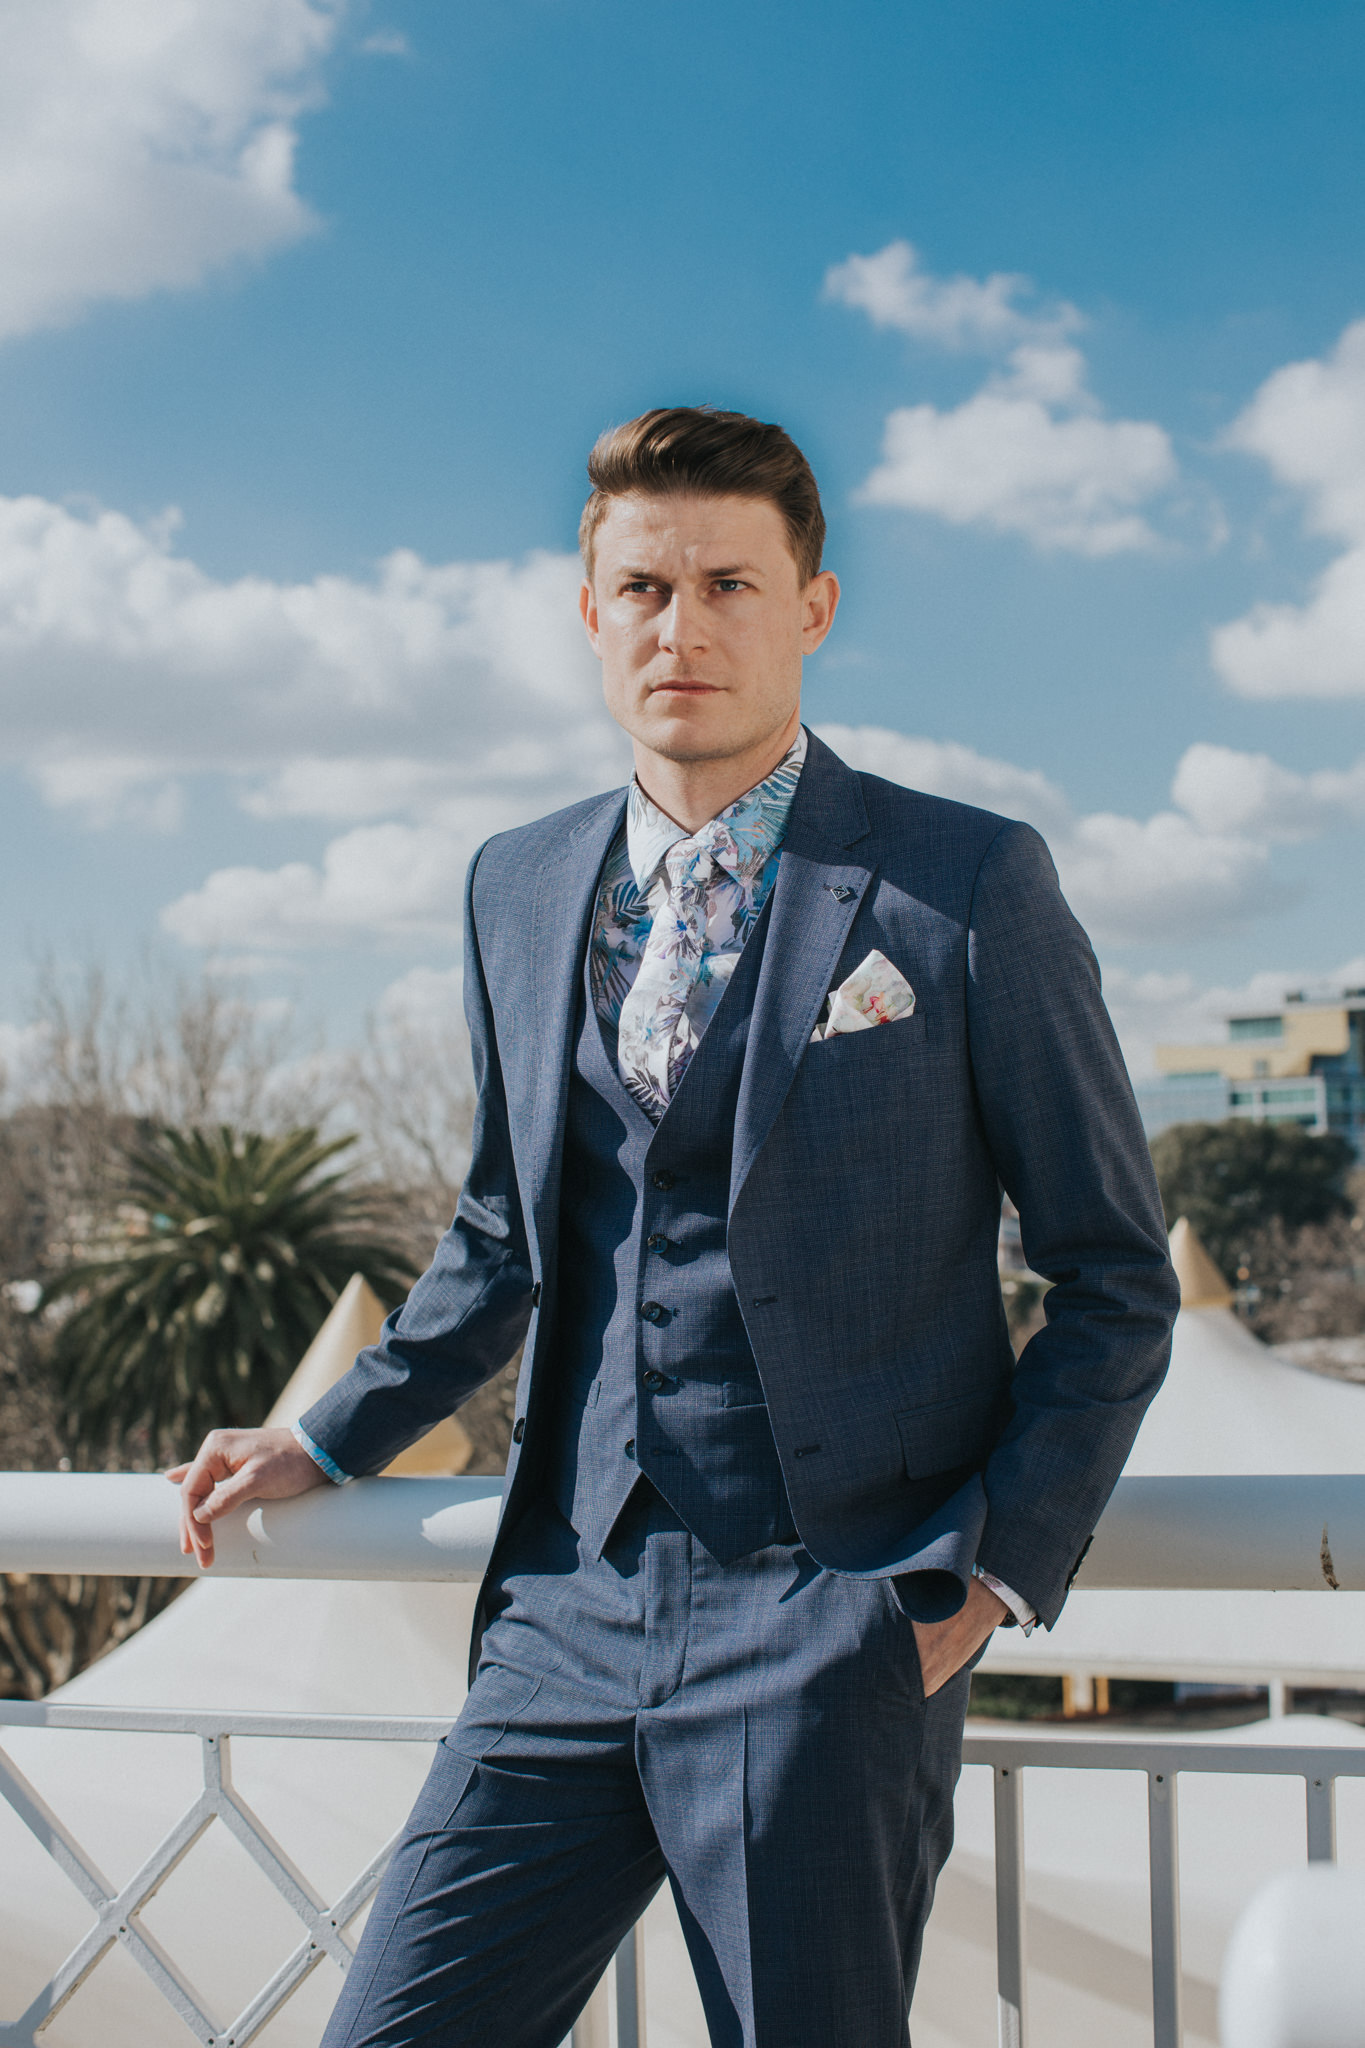 spring suit - editorial fashion photographer